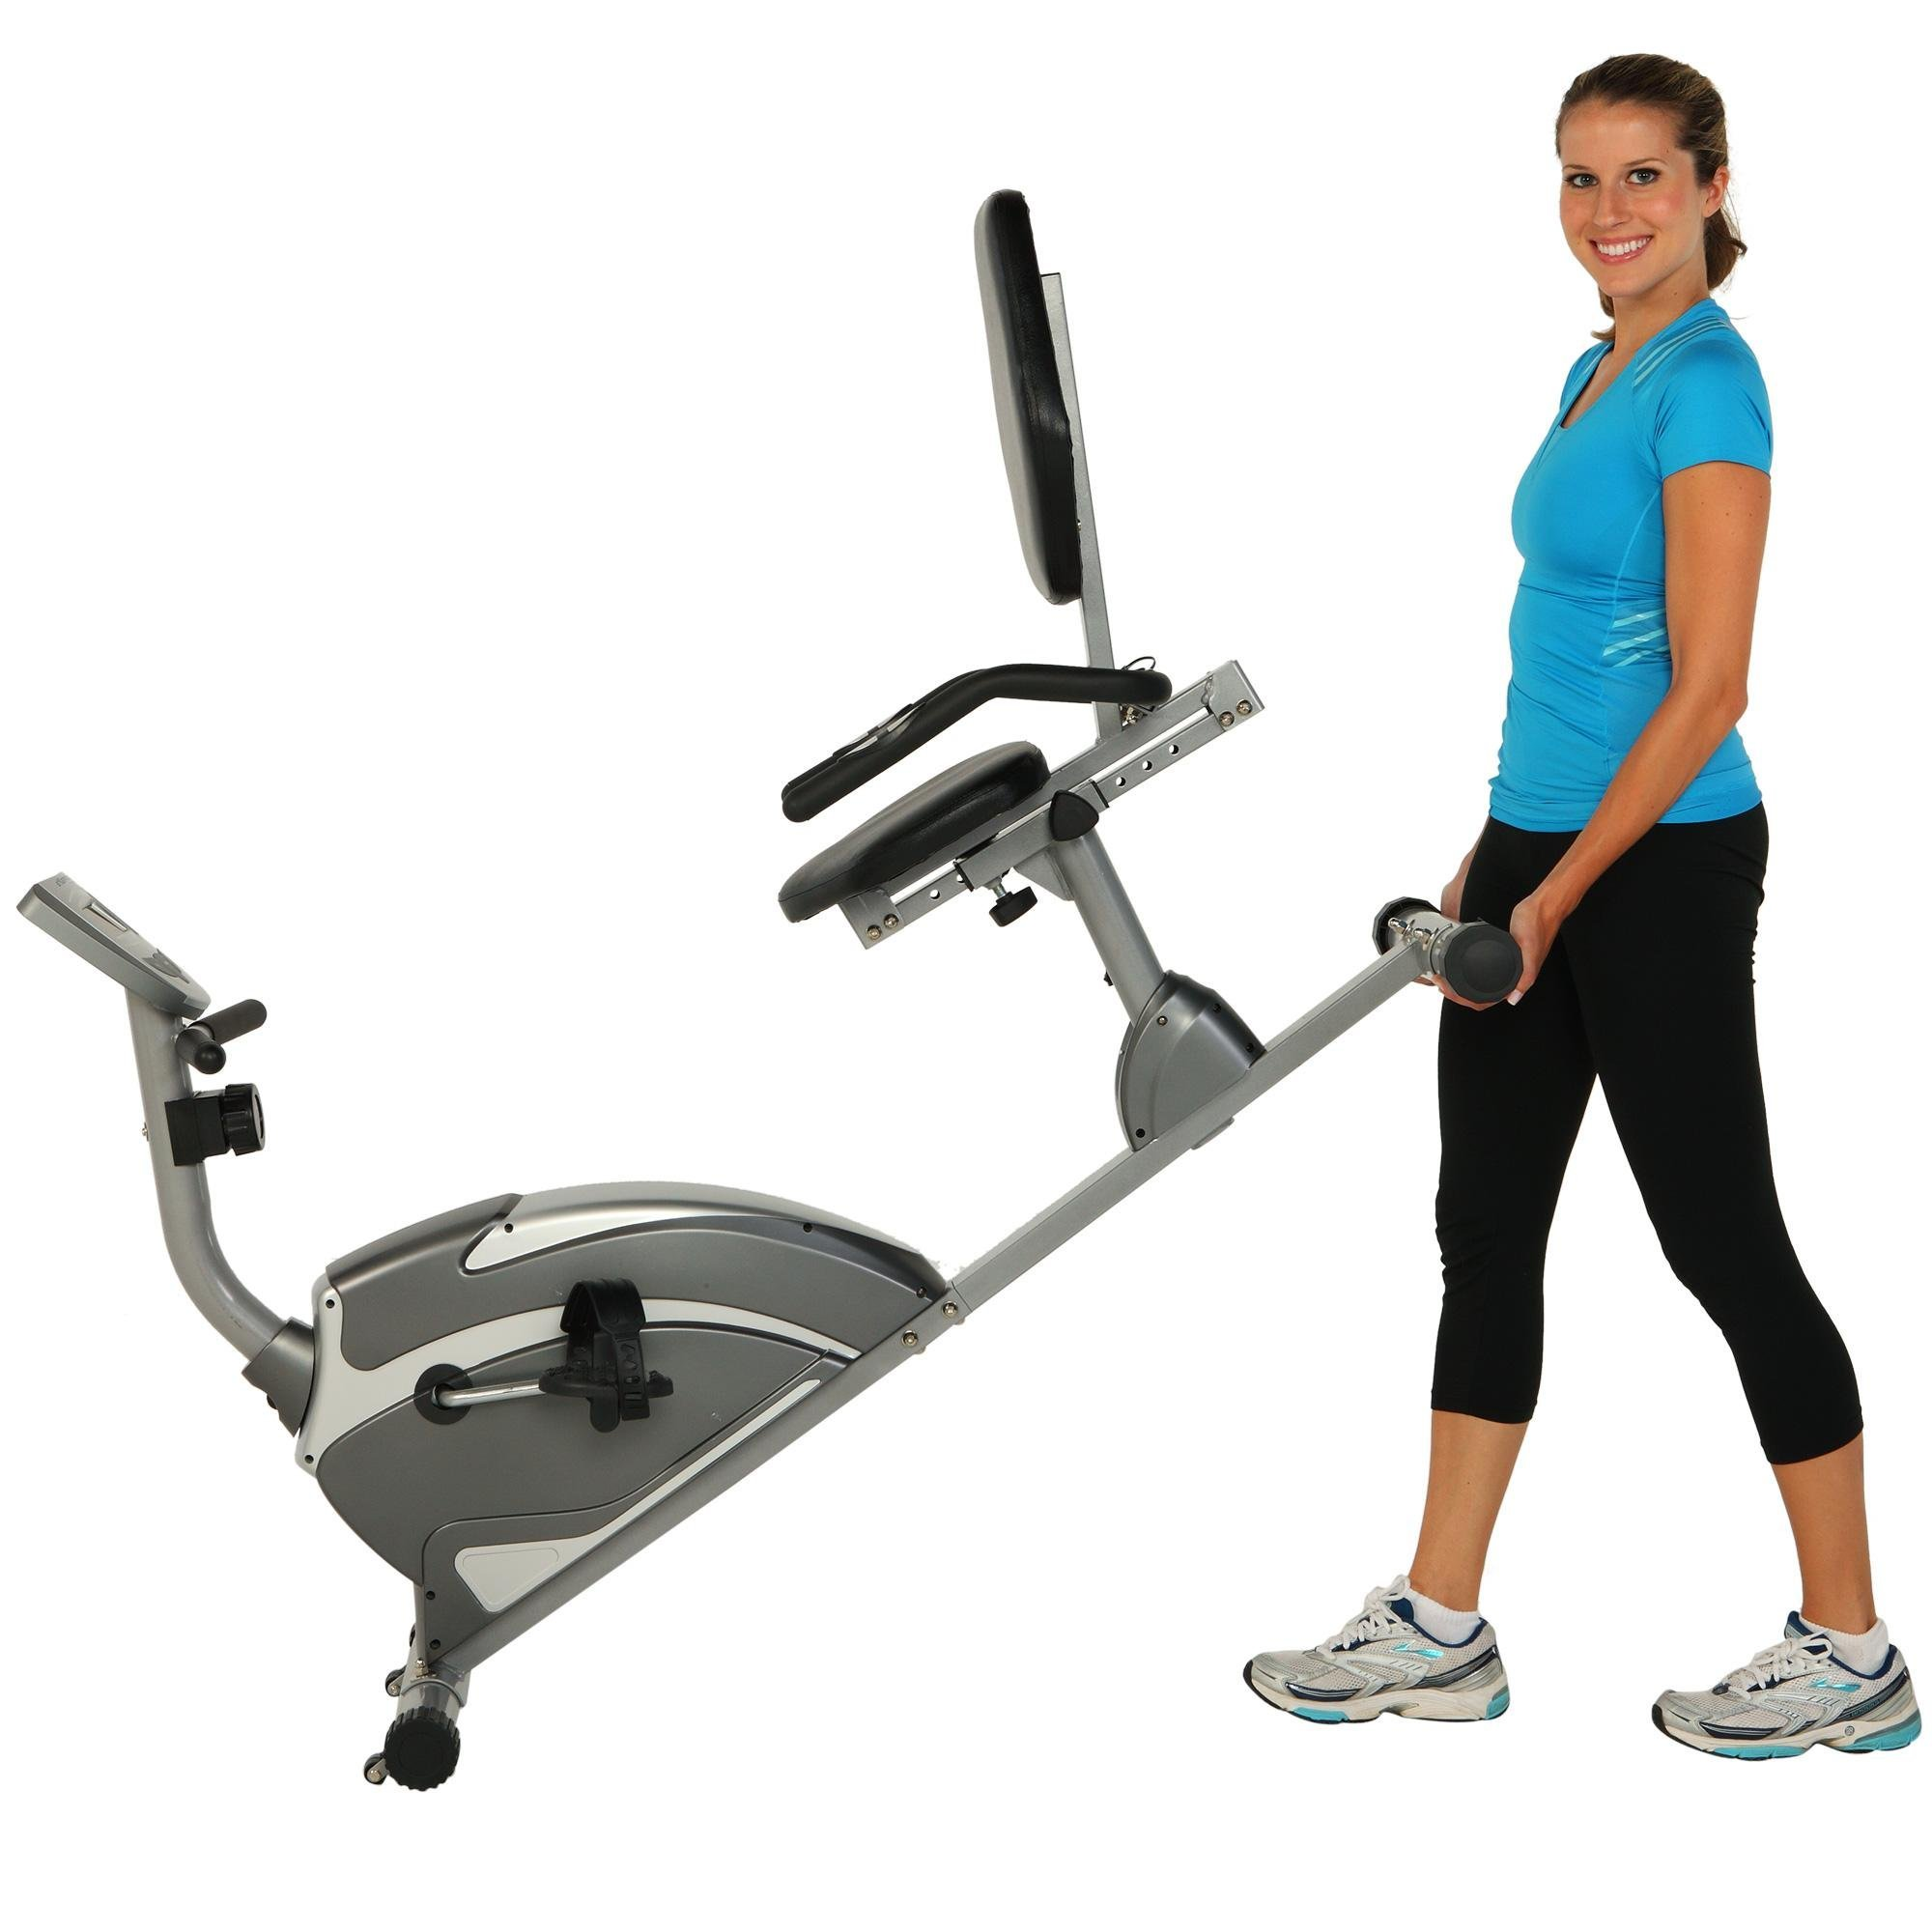 Proform 350 Spx Exercise Bike Pfex02914: Amazon.com : Exerpeutic 900XL Extended Capacity Recumbent